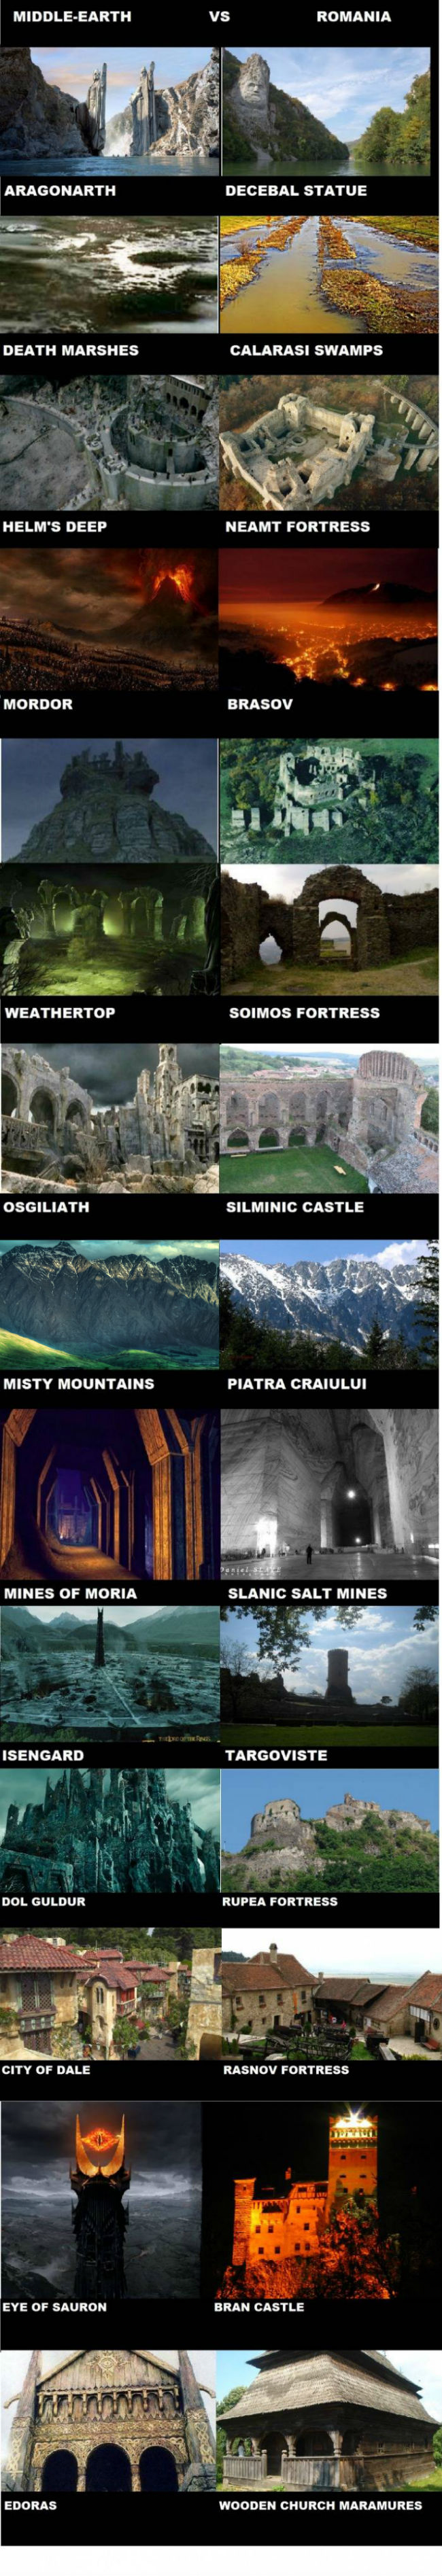 middle-earth-vs-romania